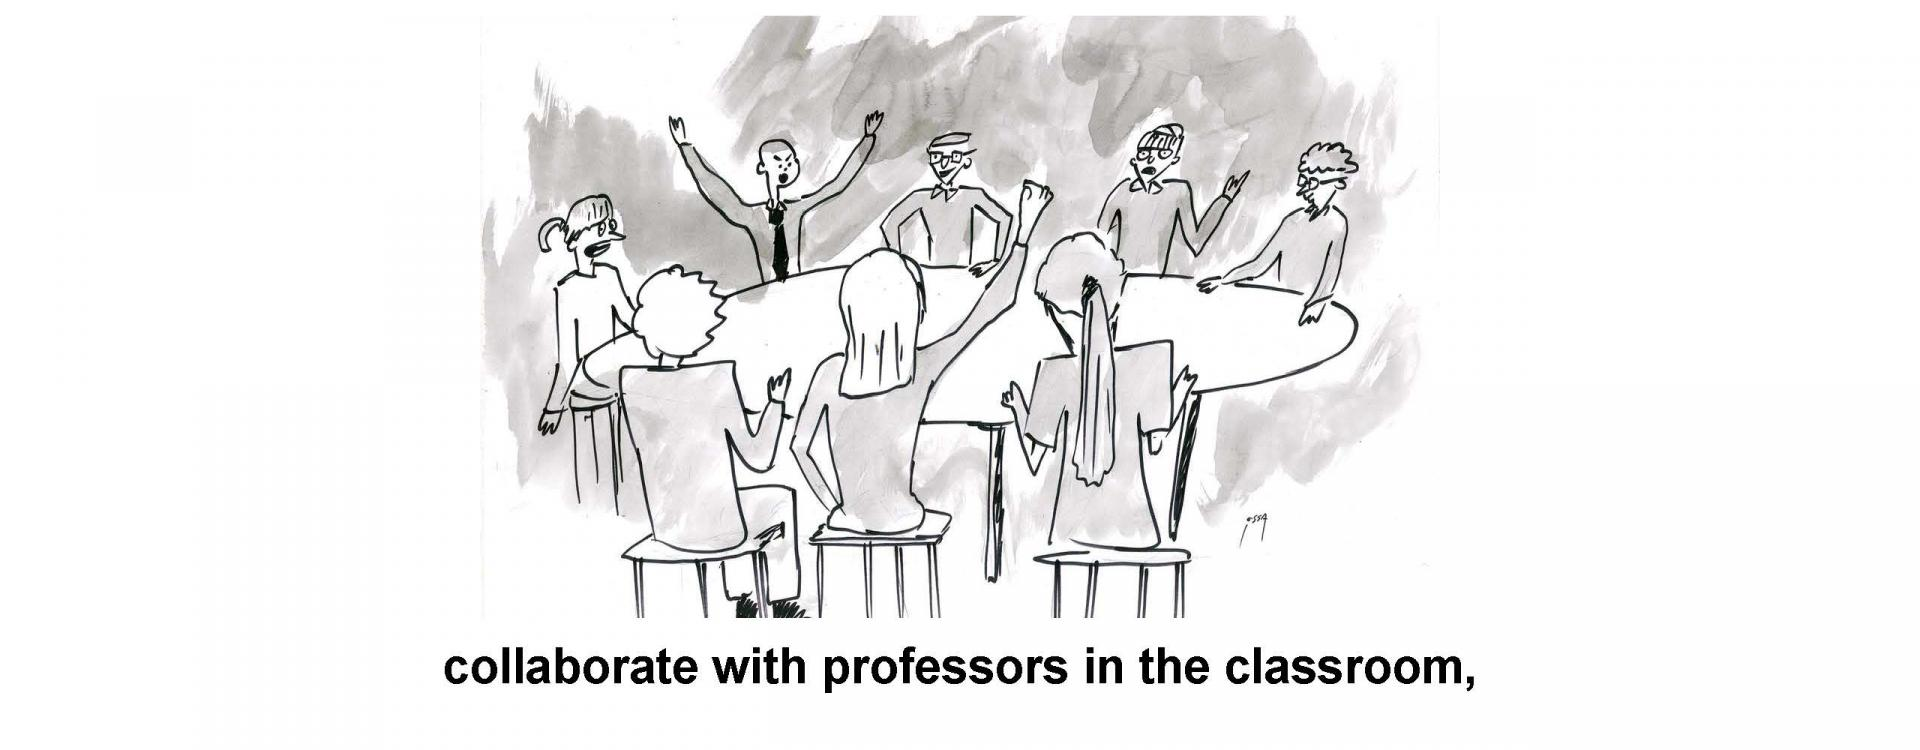 collaborate with professors in the classroom,